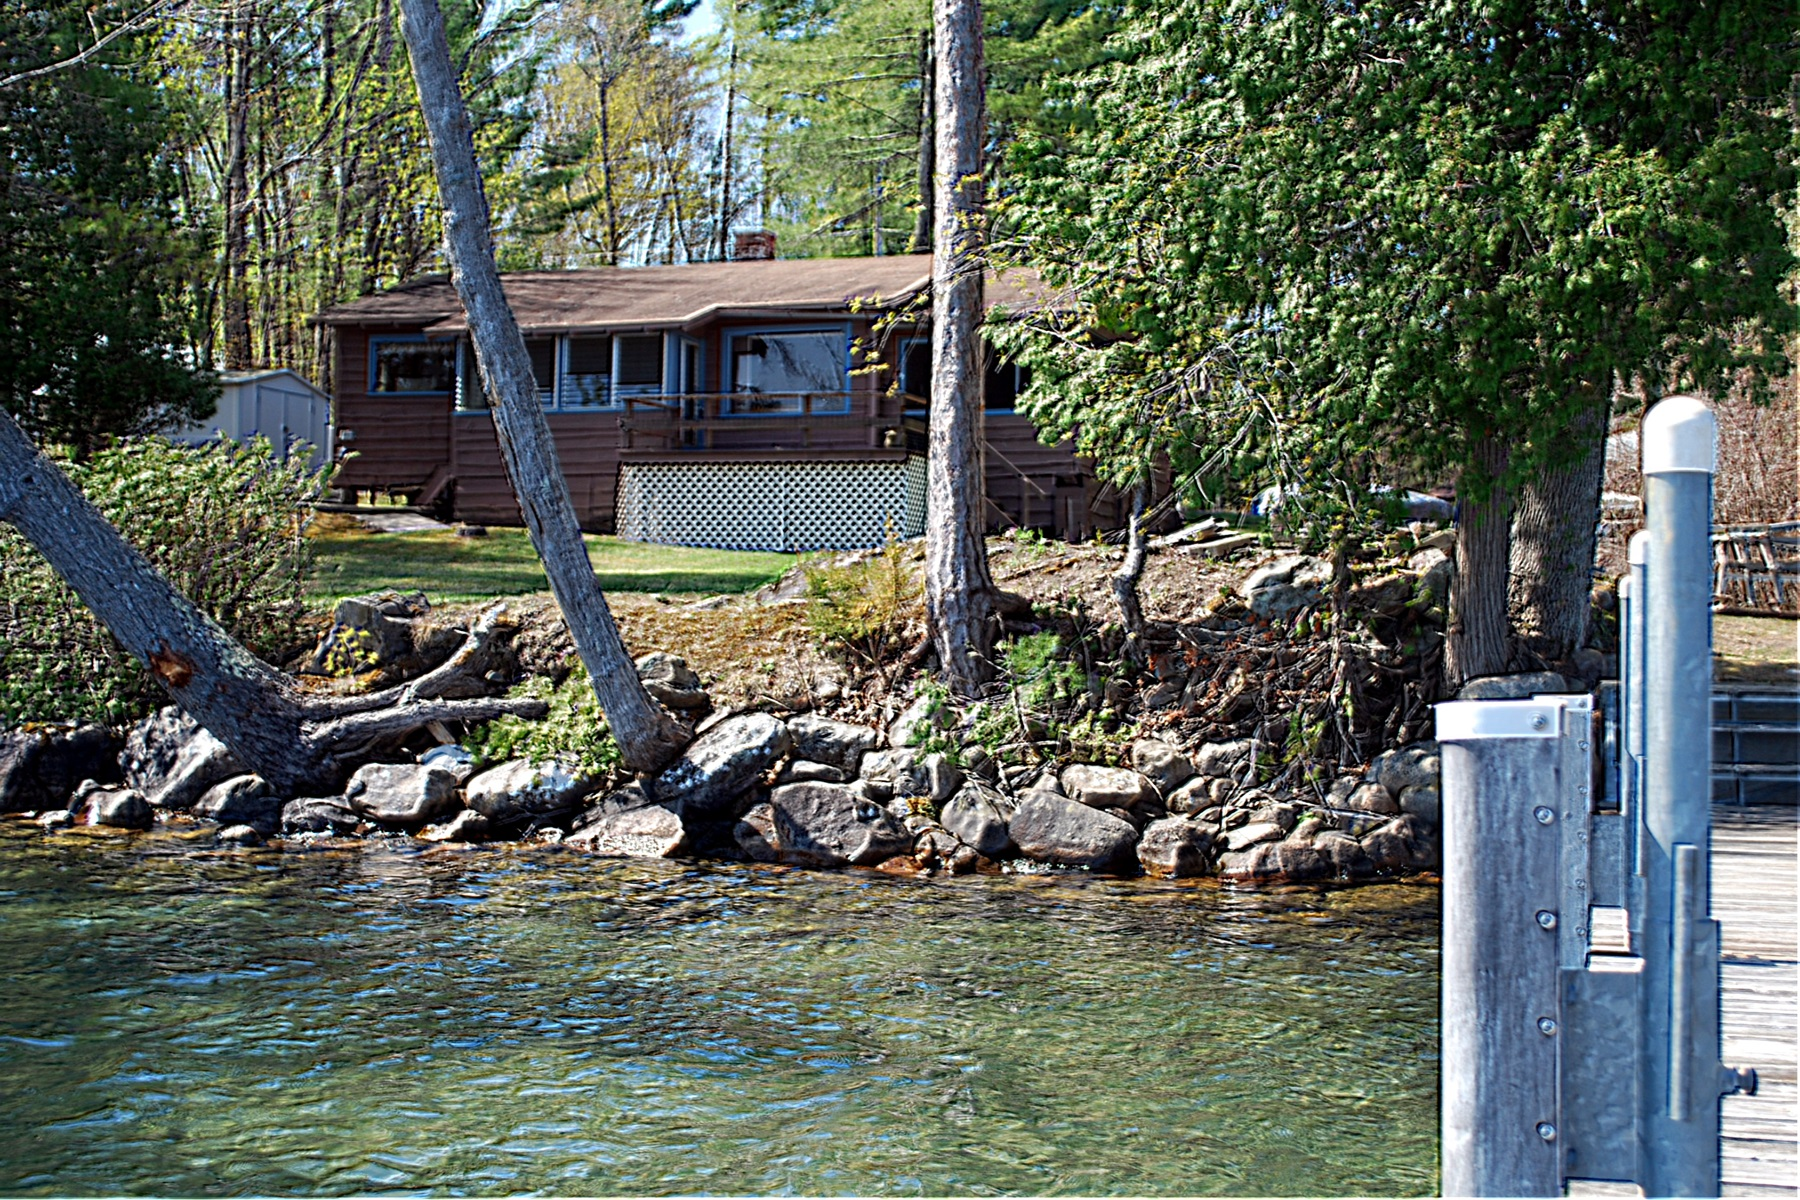 Single Family Home for Sale at Waterfront Cottage on Lake George 39 Pine Cove Rd Hague, New York 12836 United States